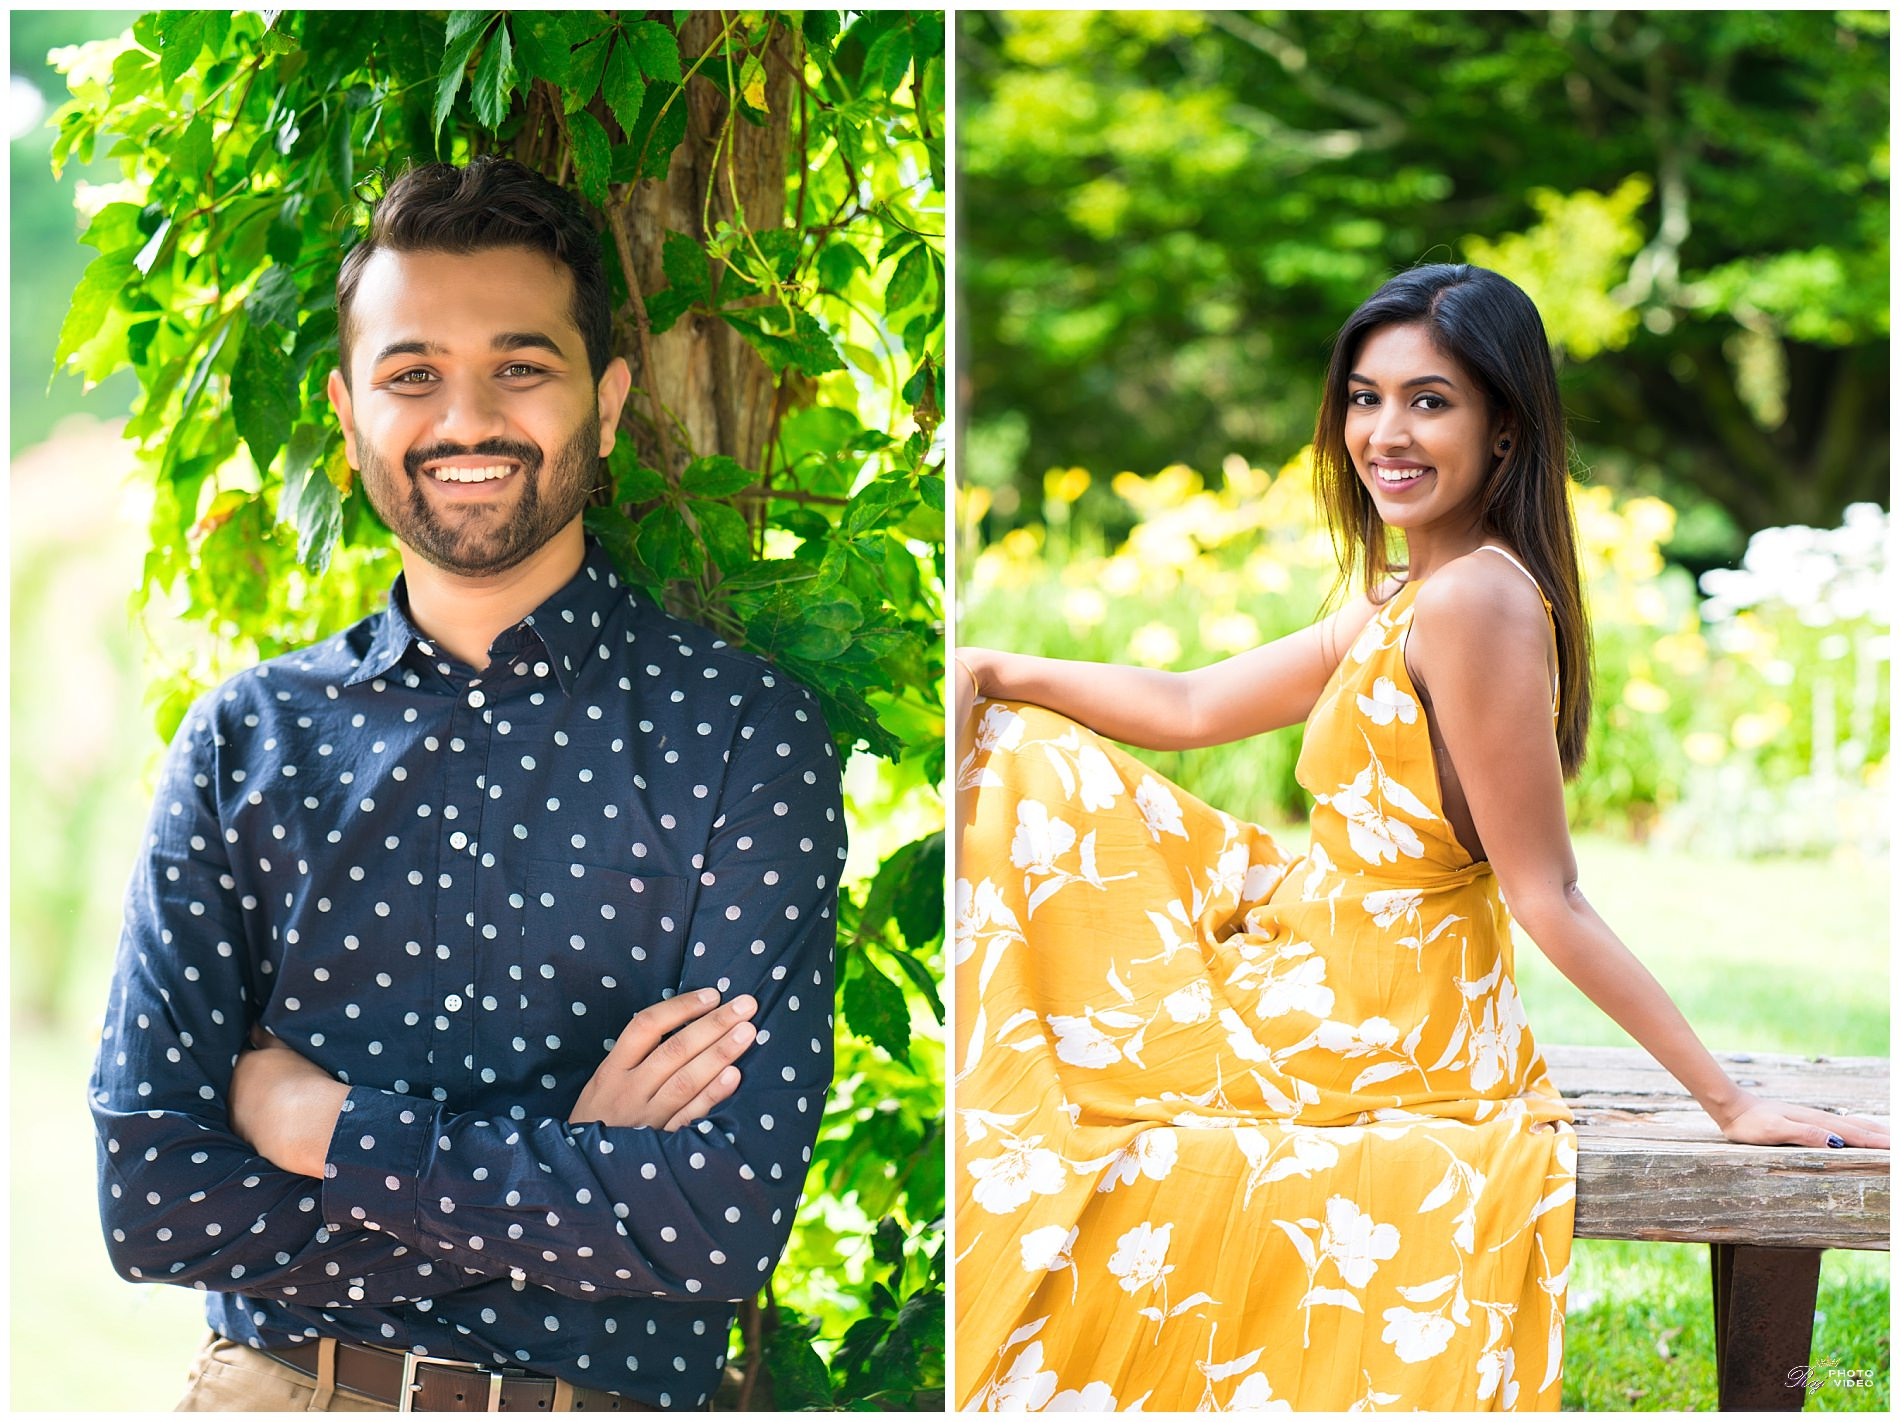 Elizabeth-Park-Rose-Garden-Hartford-CT-Engagement-Shoot-Pratiti-Suraj-16.jpg